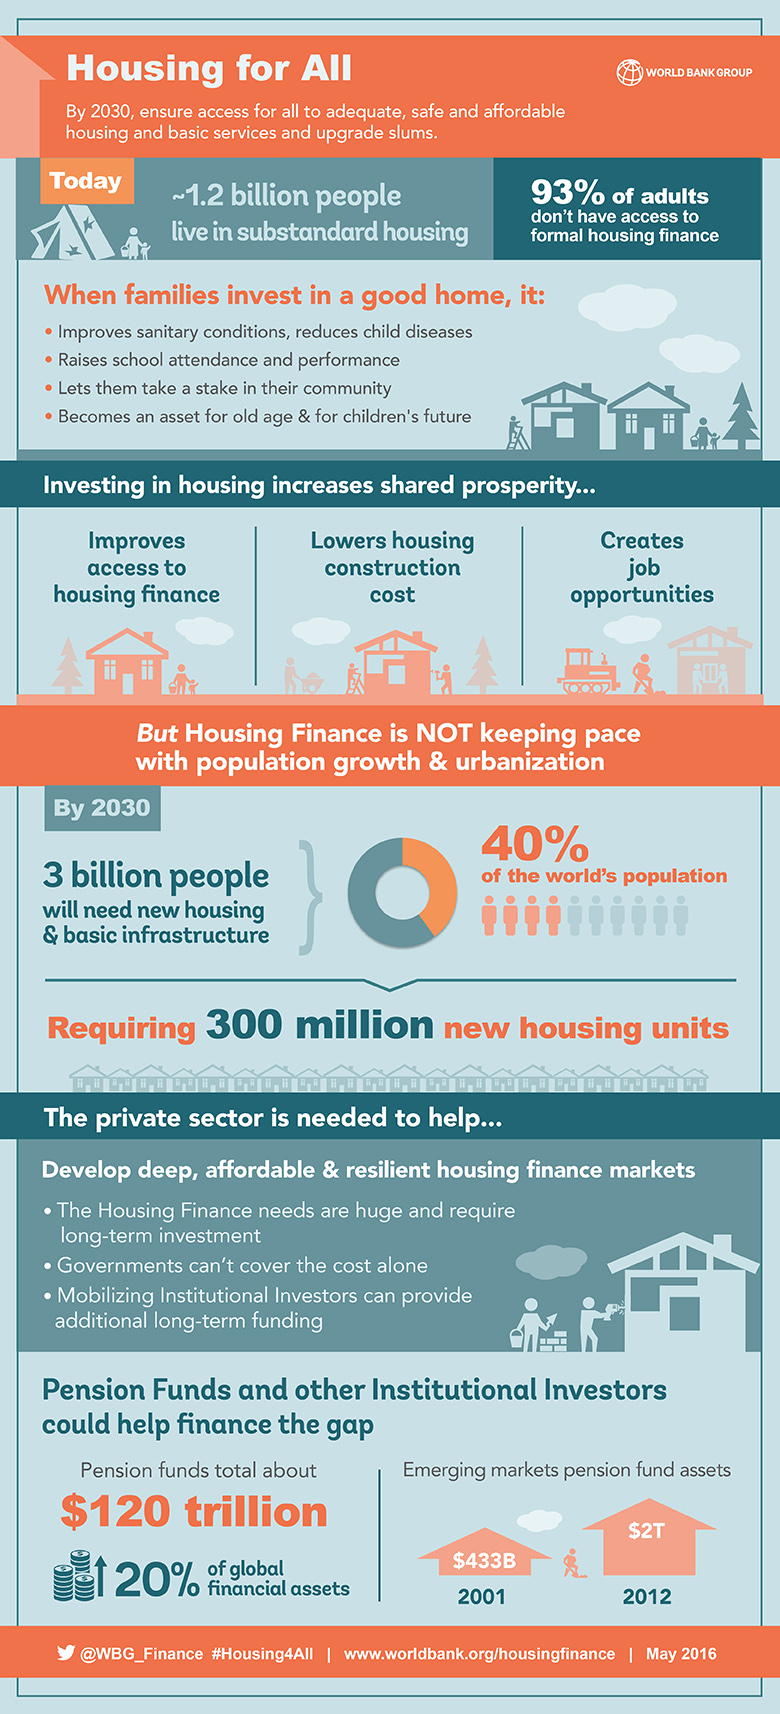 3 reasons why 'Housing for All' can happen by 2030